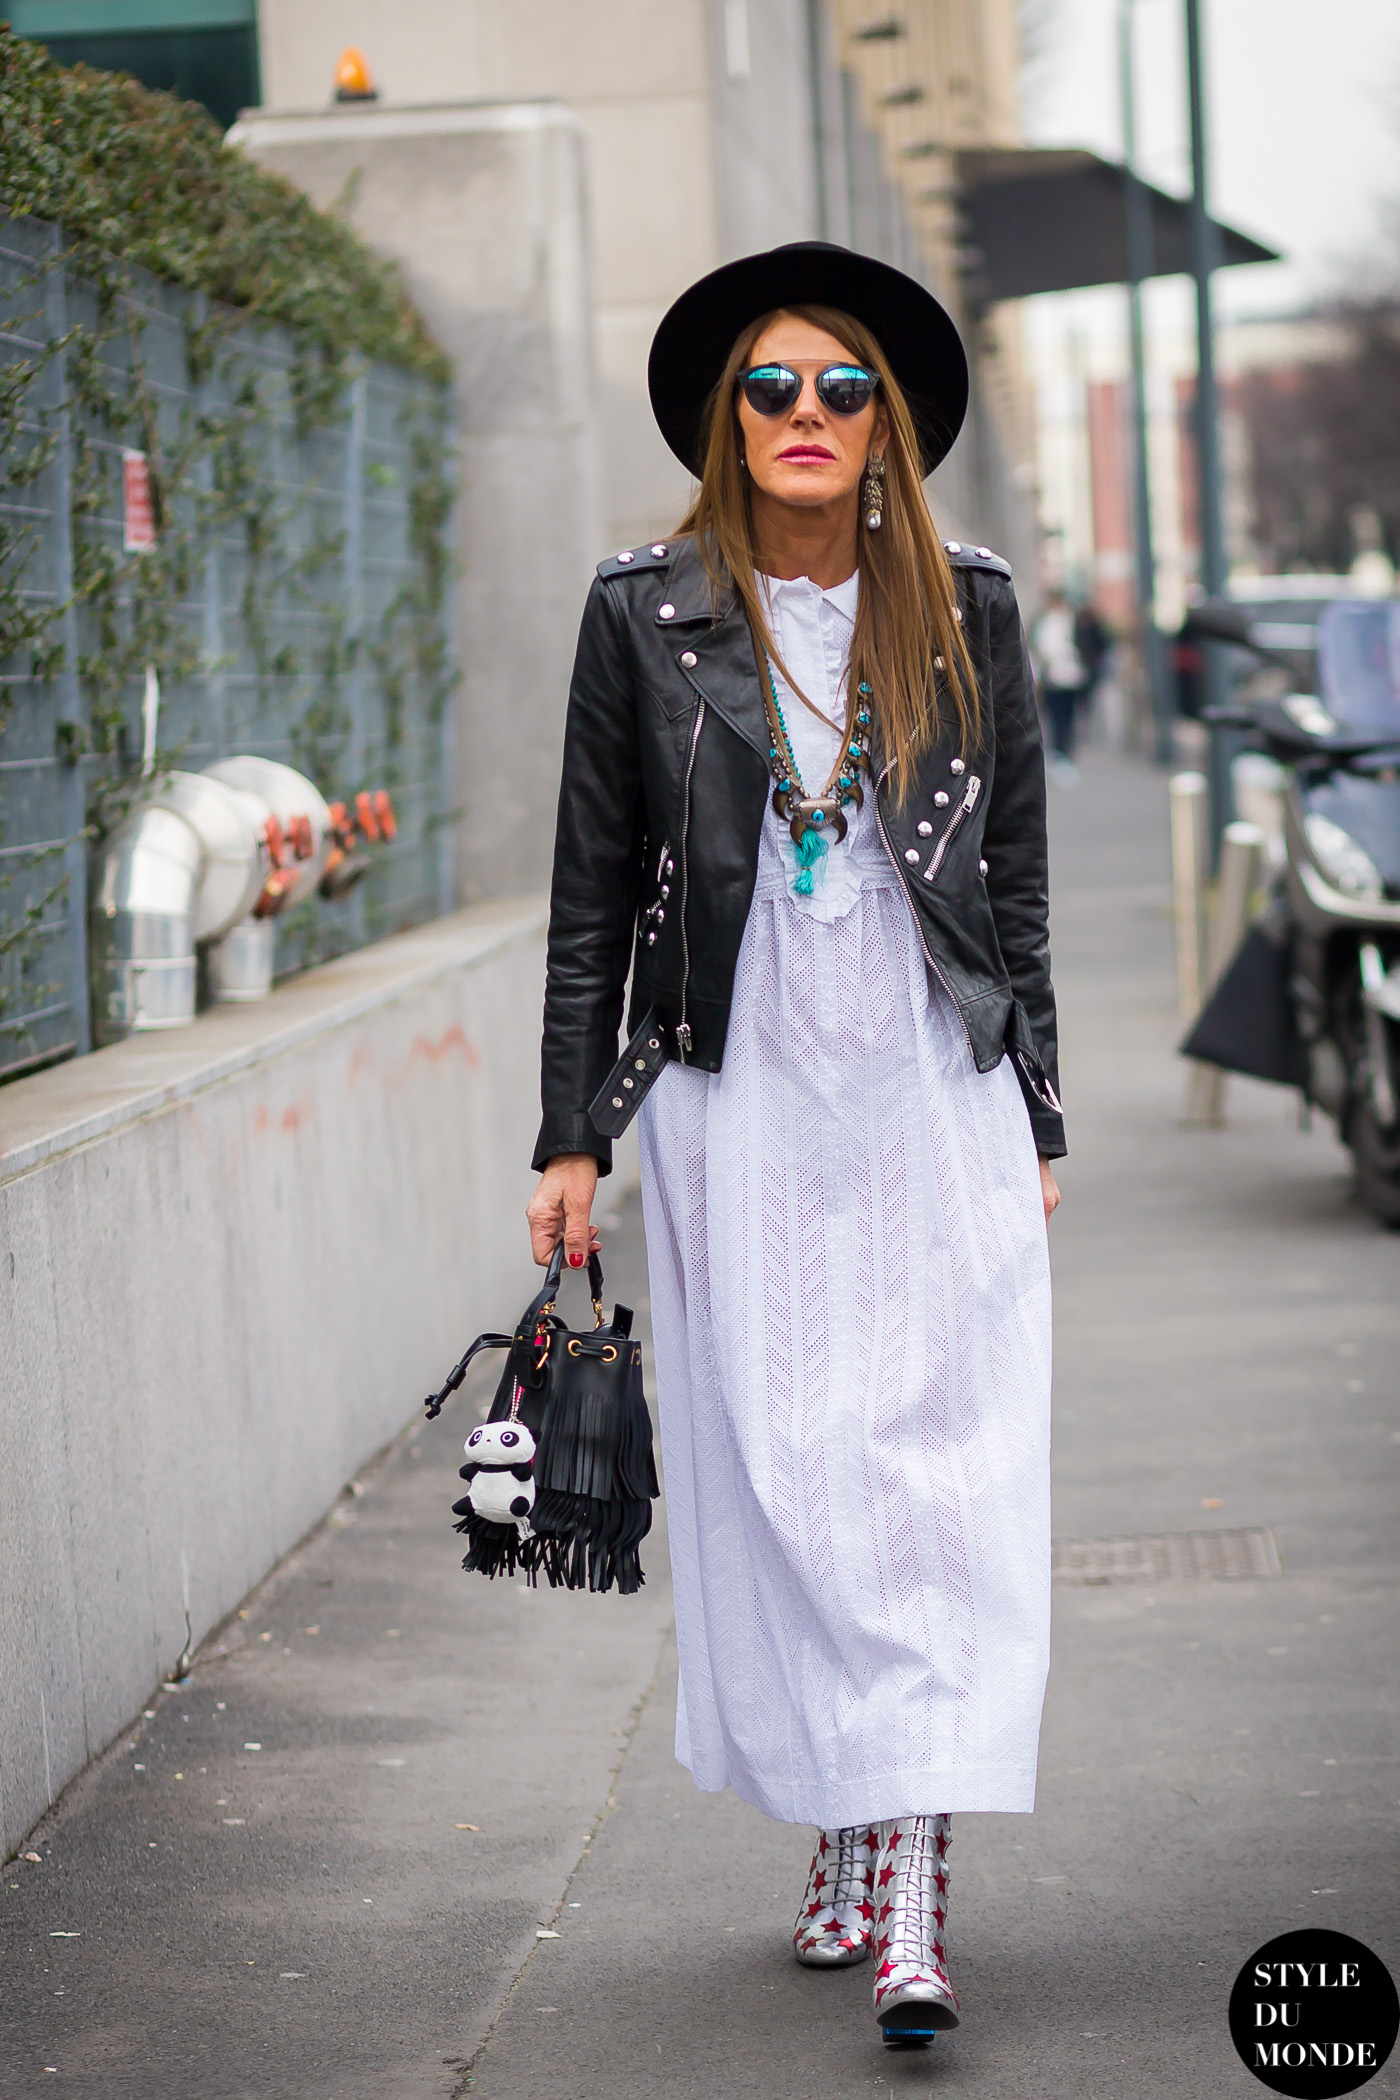 Milan Fashion Week Fw 2015 Street Style Anna Dello Russo